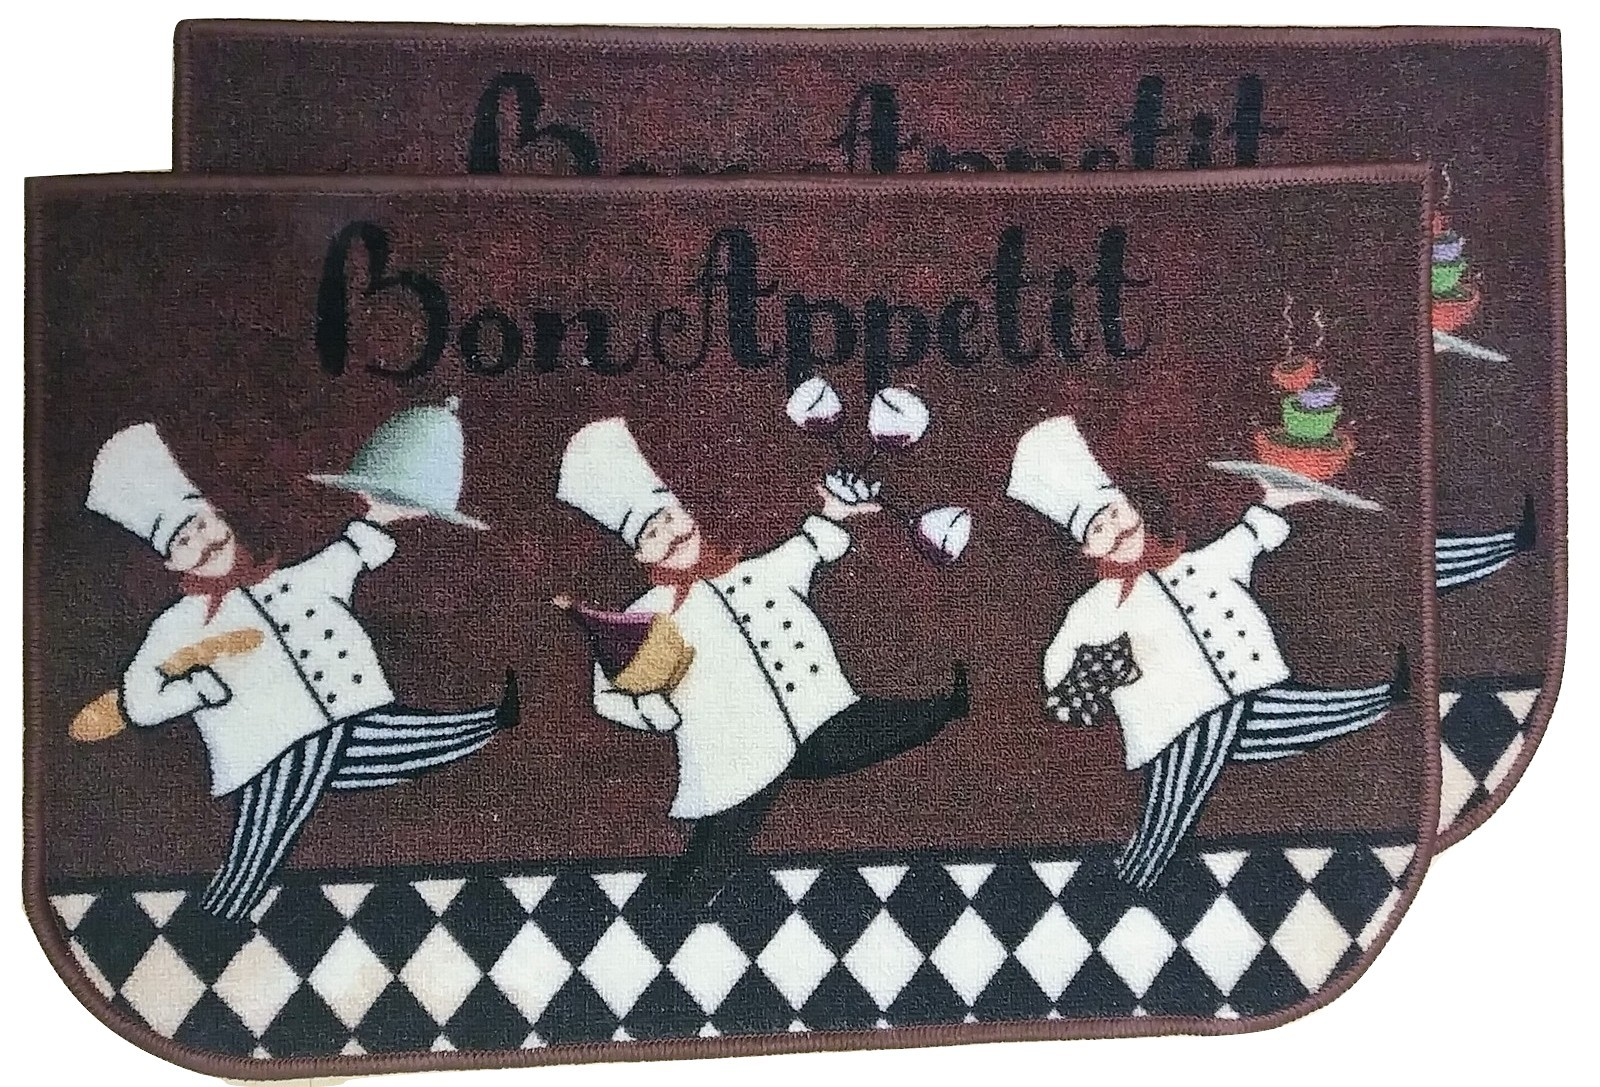 KITCHEN MATS SET 2pc Three Fat Chef Cook Wine Cafe Brown 18x28 Nylon Non-Skid